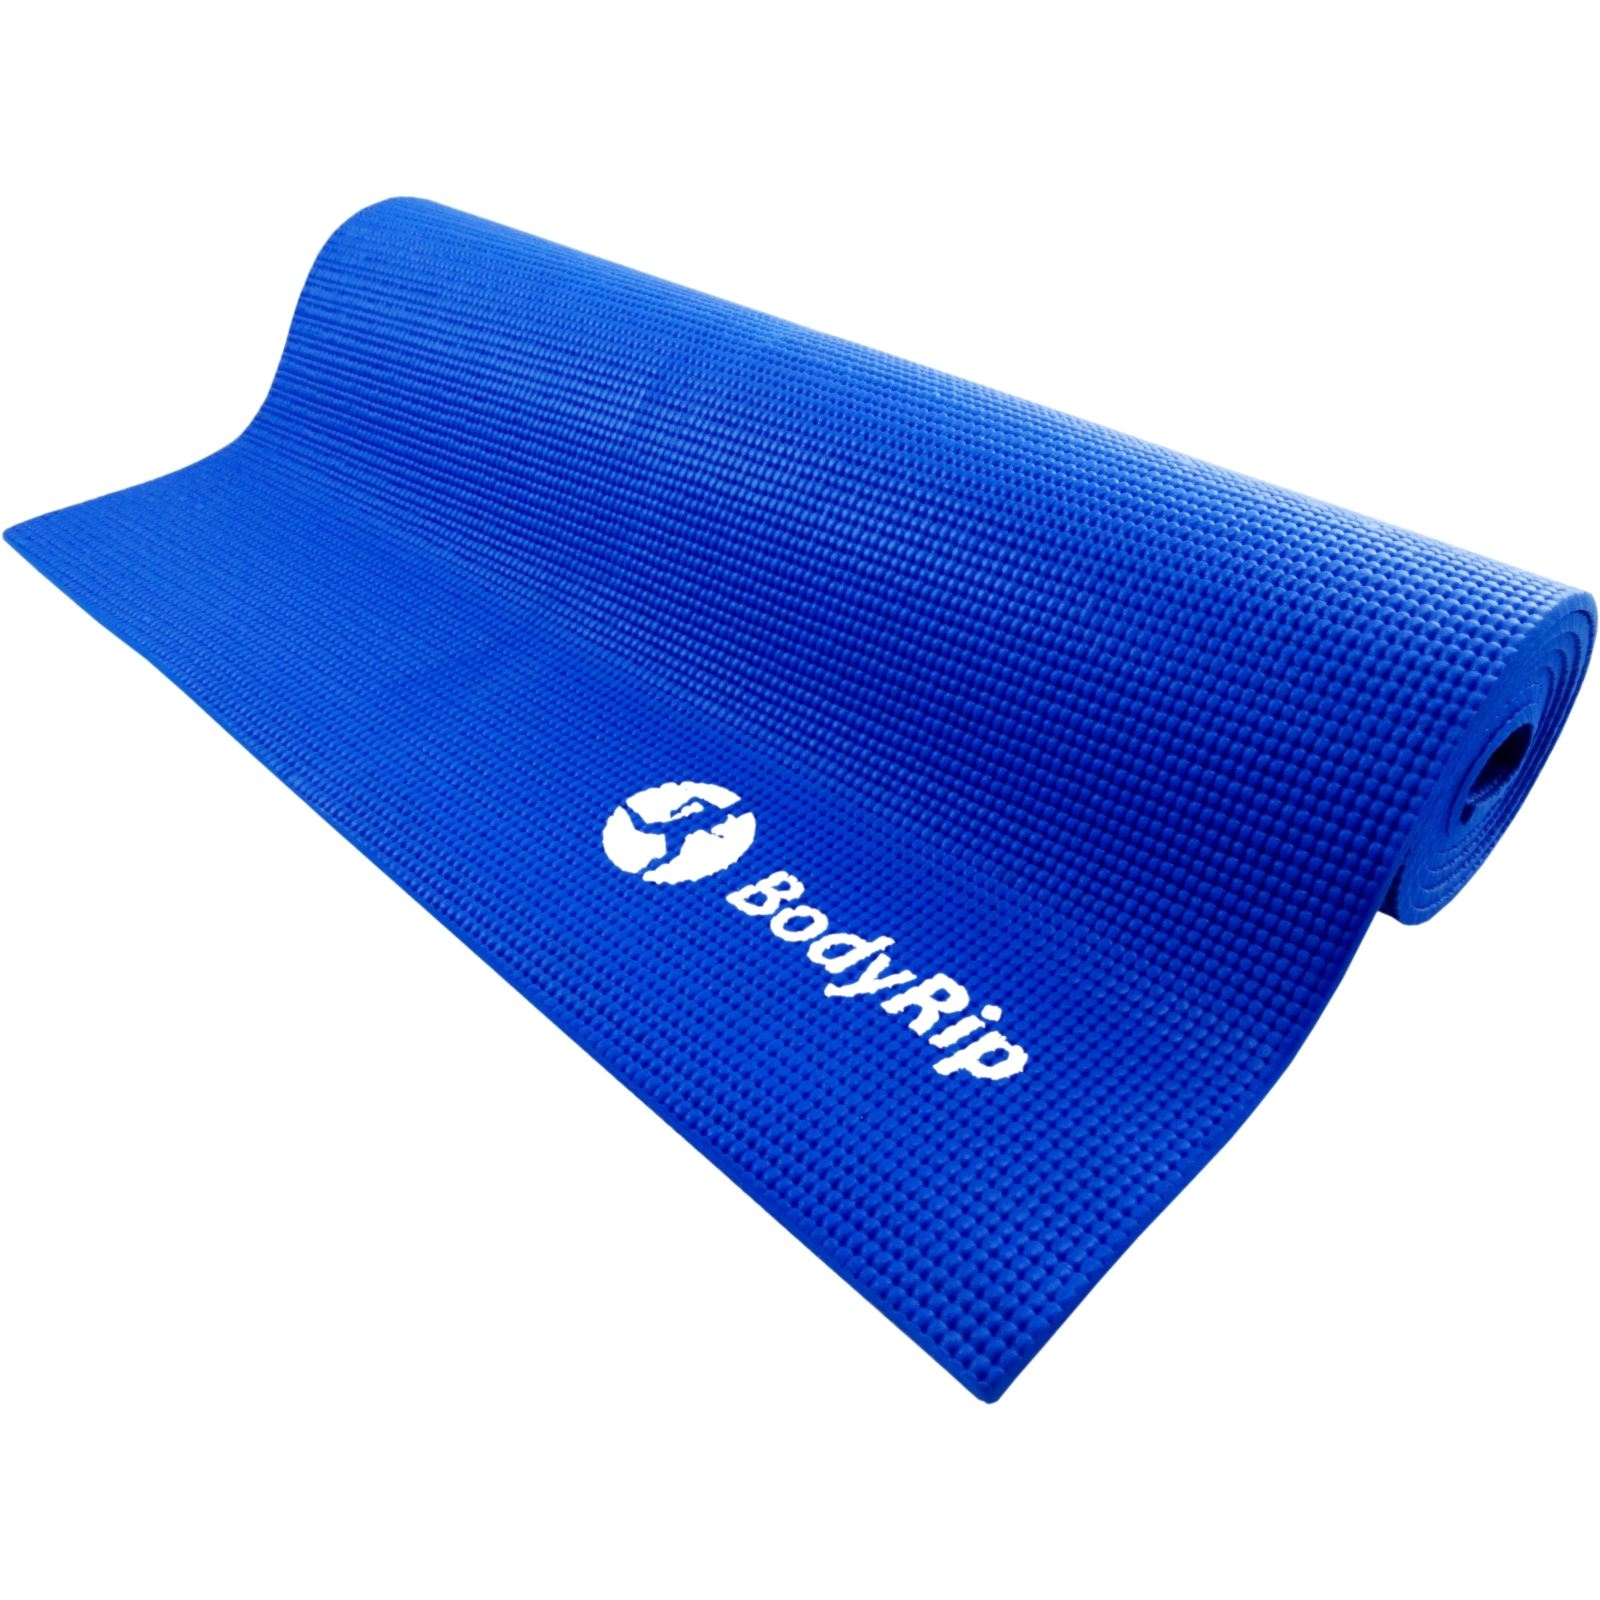 products gymnastics folding choice gym walmart blue best diy yoga mats exercise com aerobics mat ip stretching